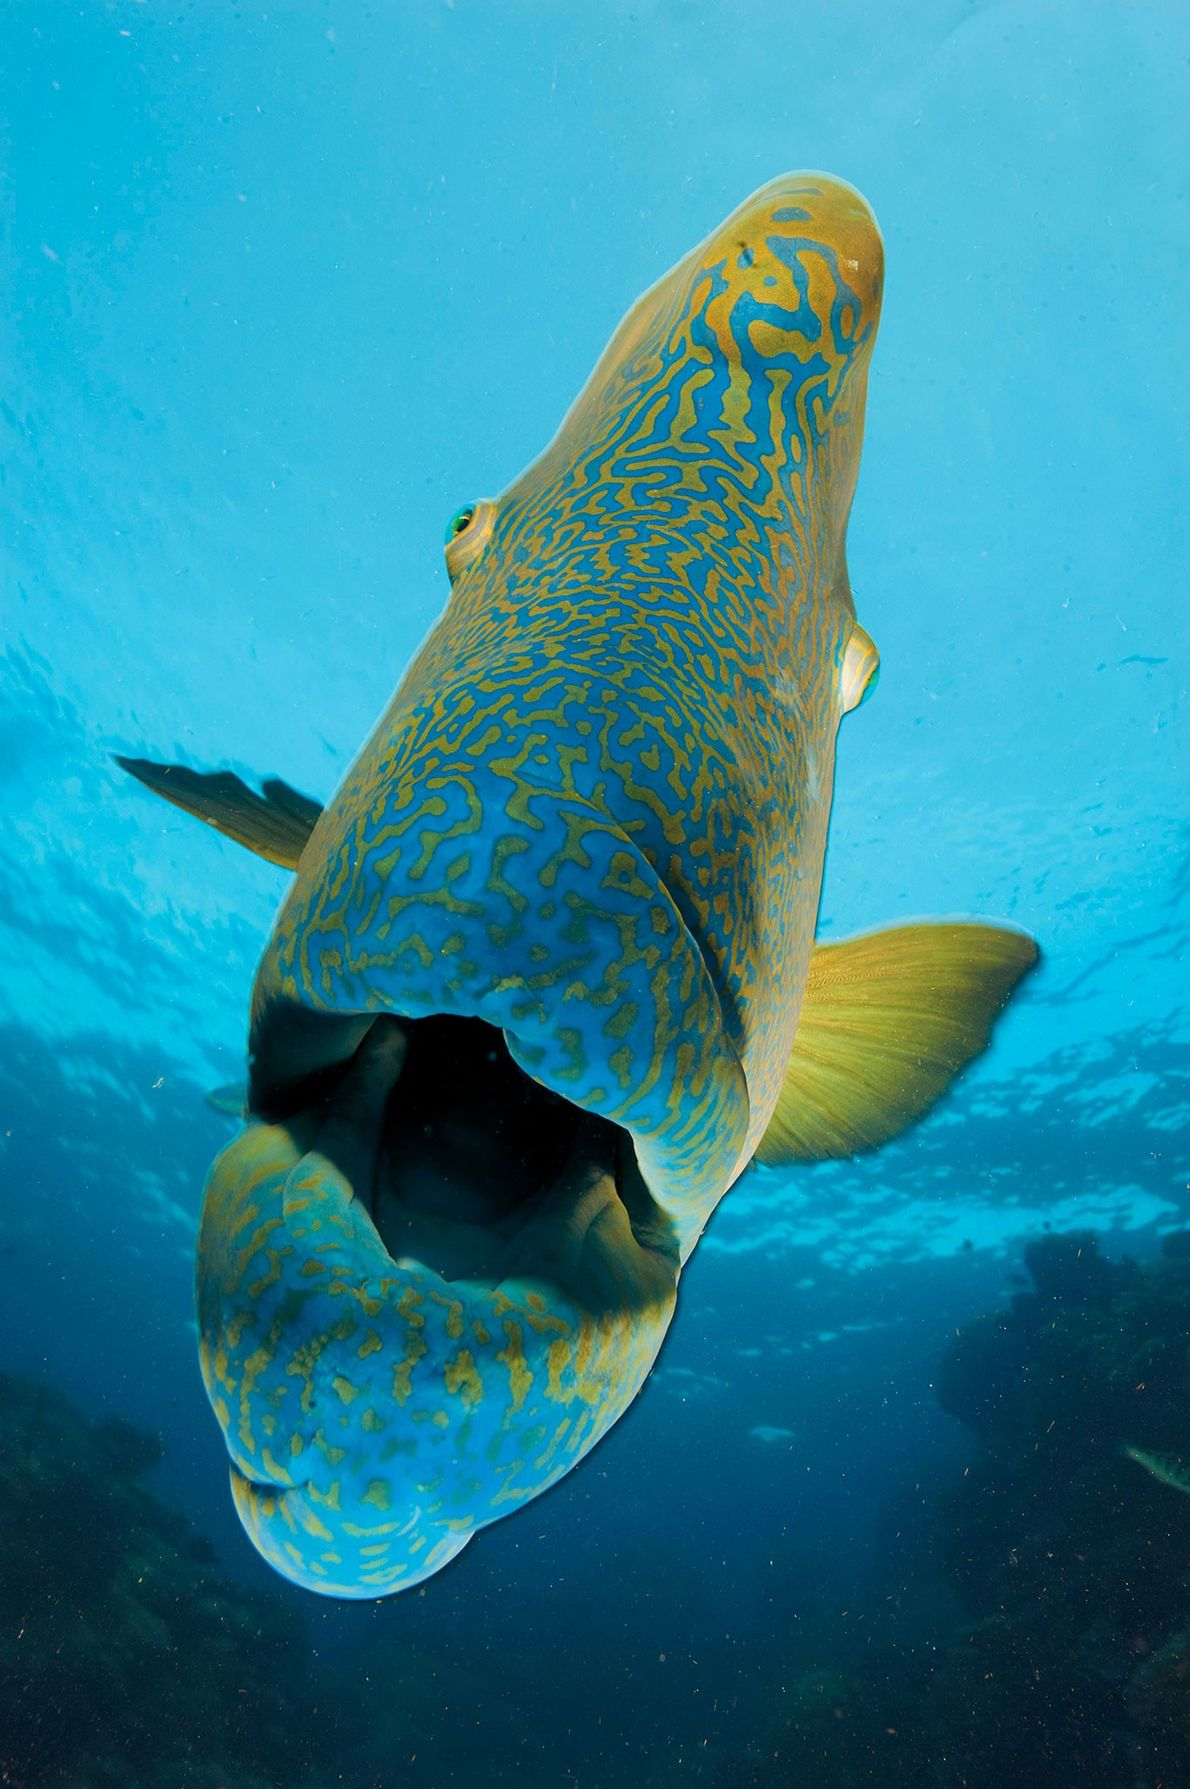 The humphead wrasse is among the reef's many thousands of species.